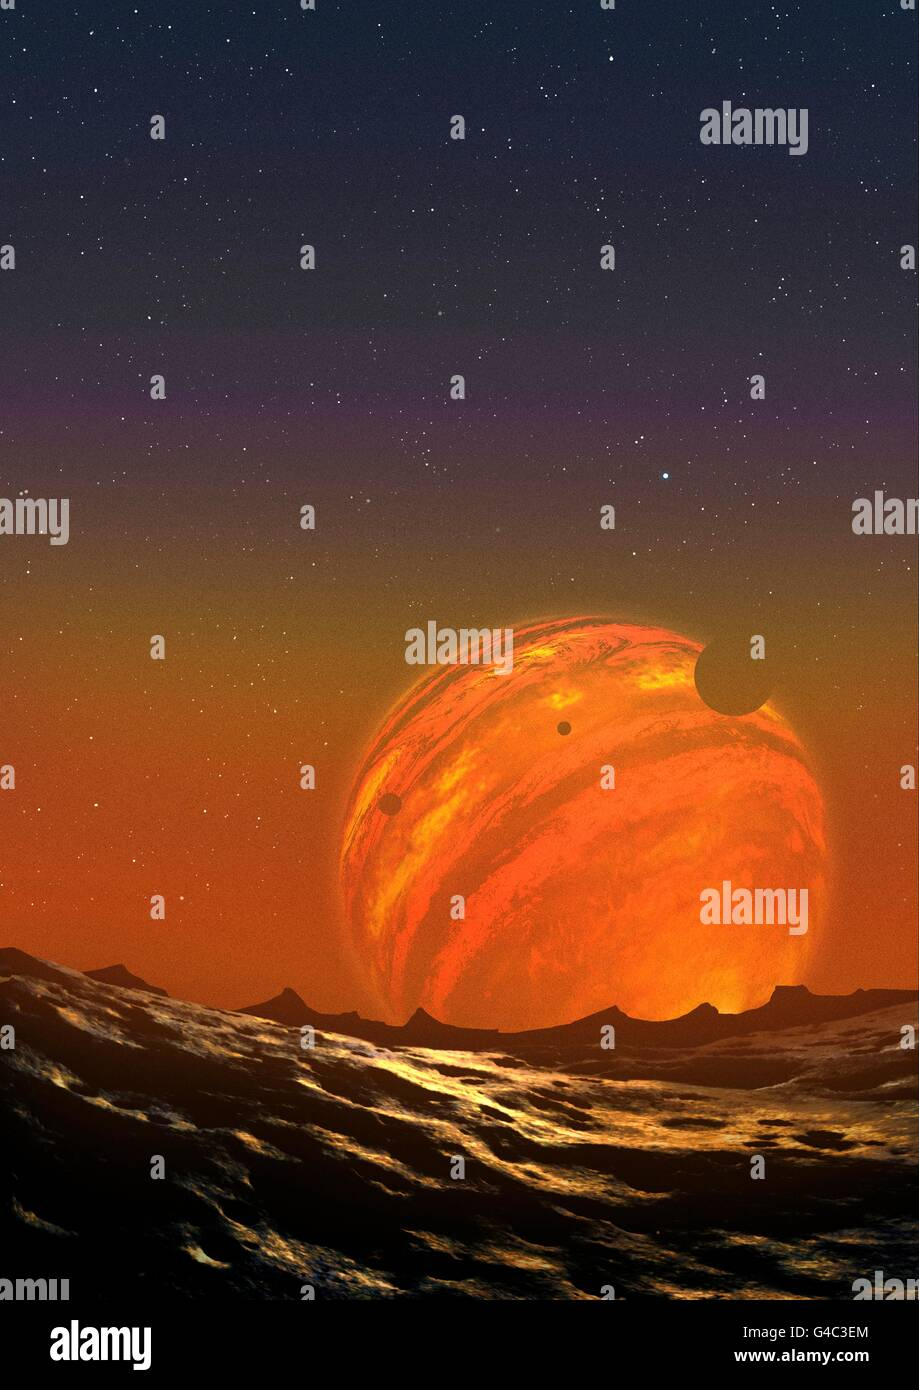 Illustration of a free-floating planet. PSO J318.5-22 is a planet in the constellation of Pictor, around 80 light - Stock Image